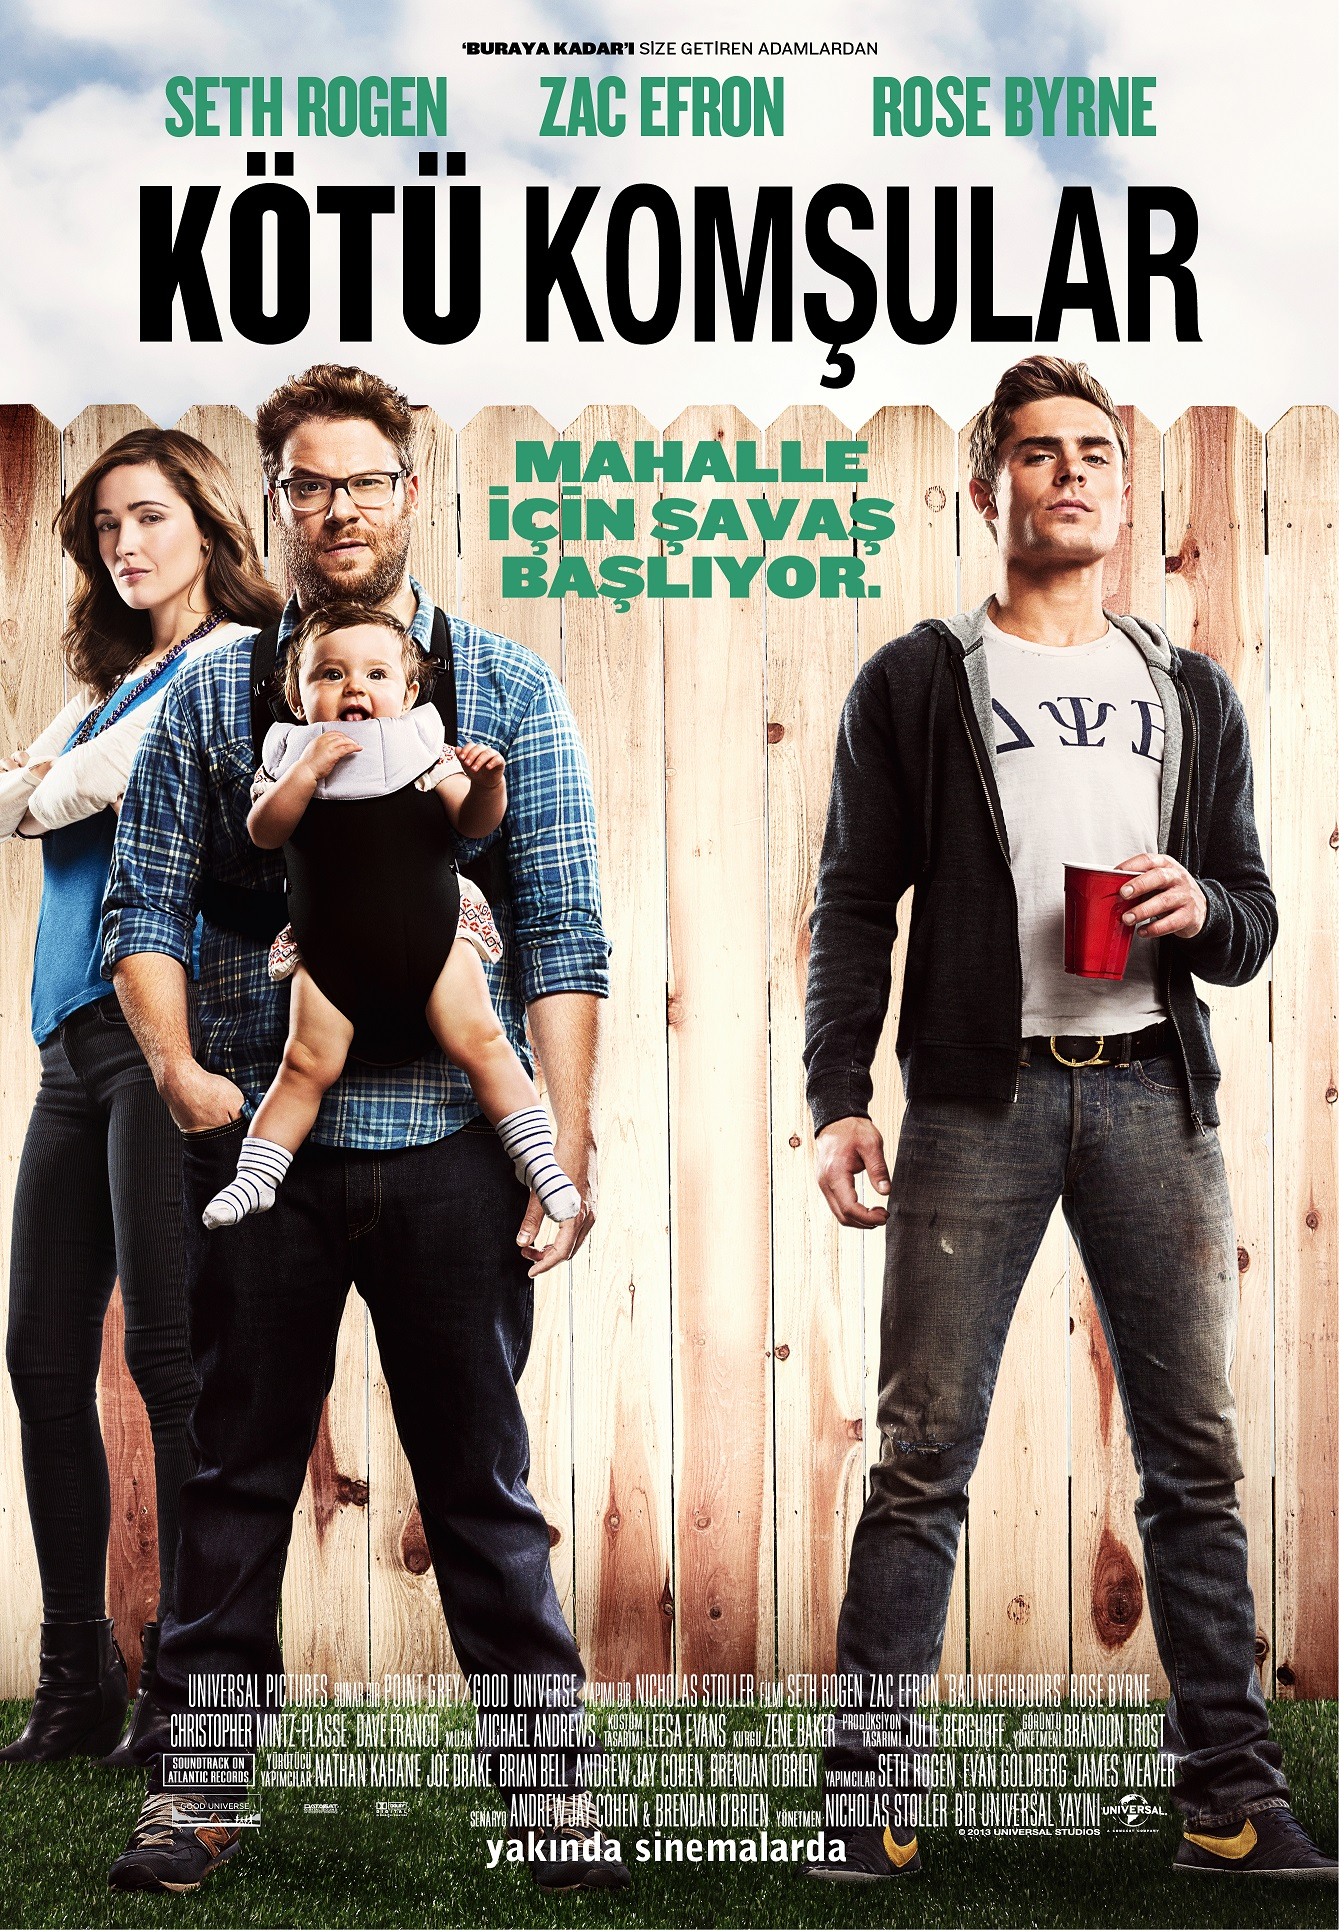 KÖTÜ  KOMŞULAR (BAD NEIGHBORS)